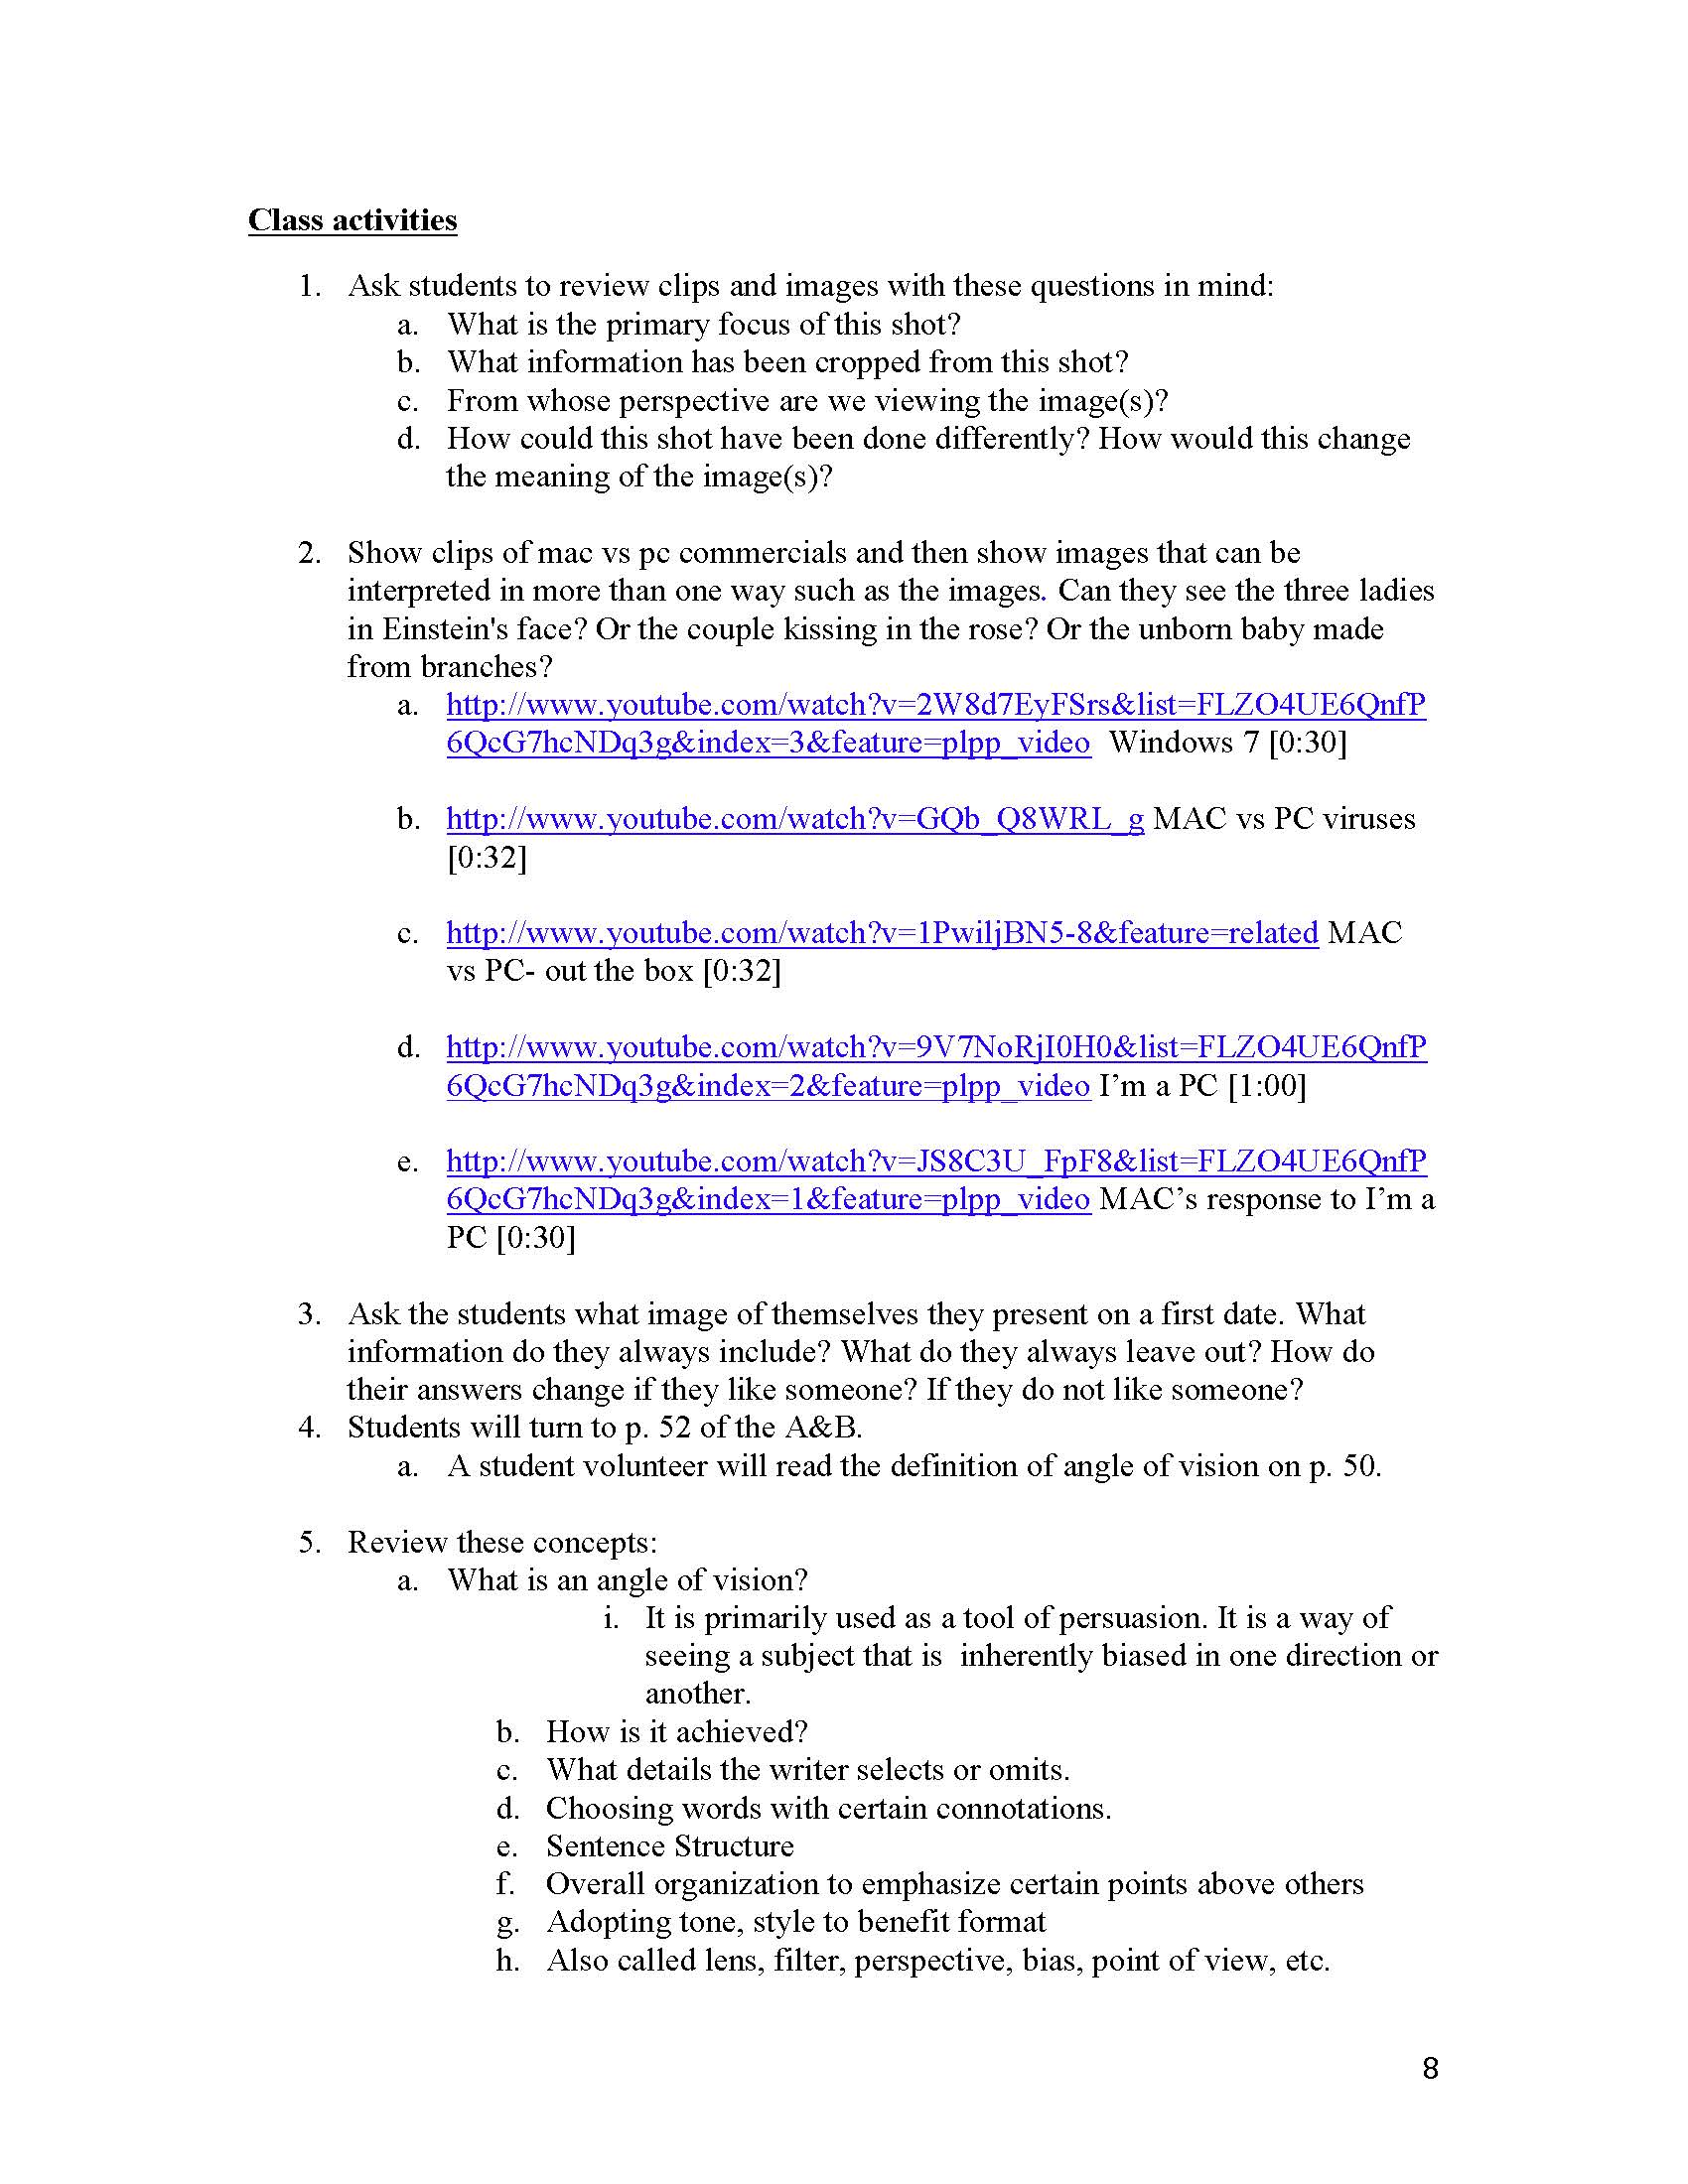 006 Essay Example Define Narrative Unit 1 Literacy Instructor Copy Page 08 Fascinating Definition Of Writing Personal Narrative/descriptive Full